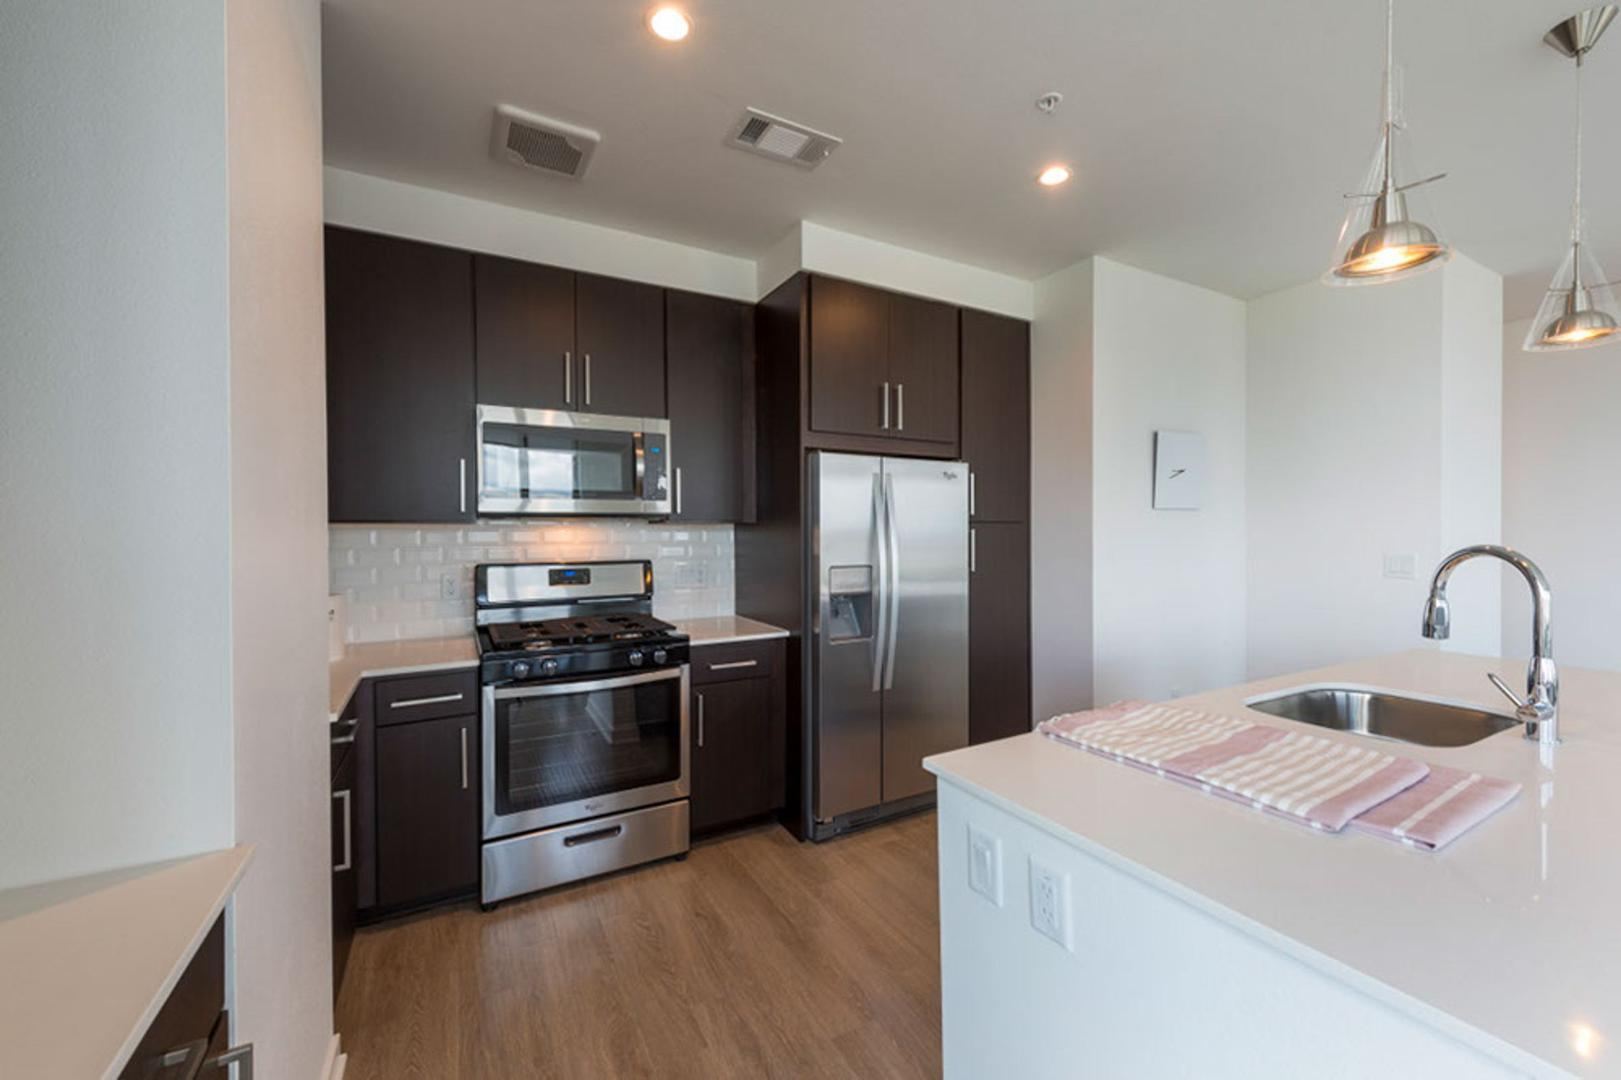 1911 Holcombe Blvd #2209 - 5654USD / month